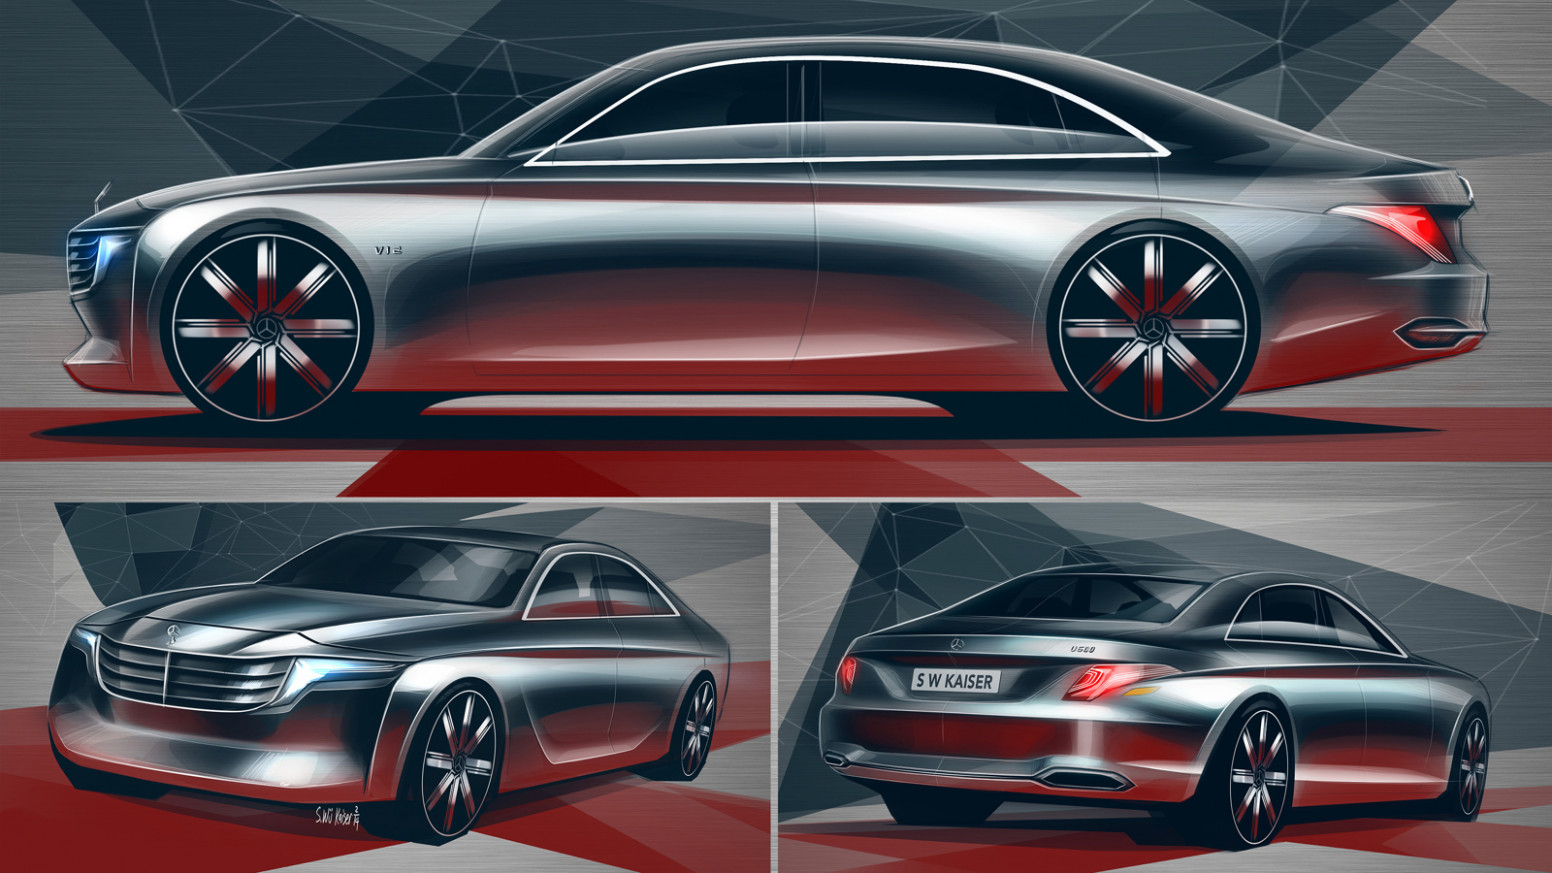 Redesign and Concept 2022 Mercedes-Benz S-Class